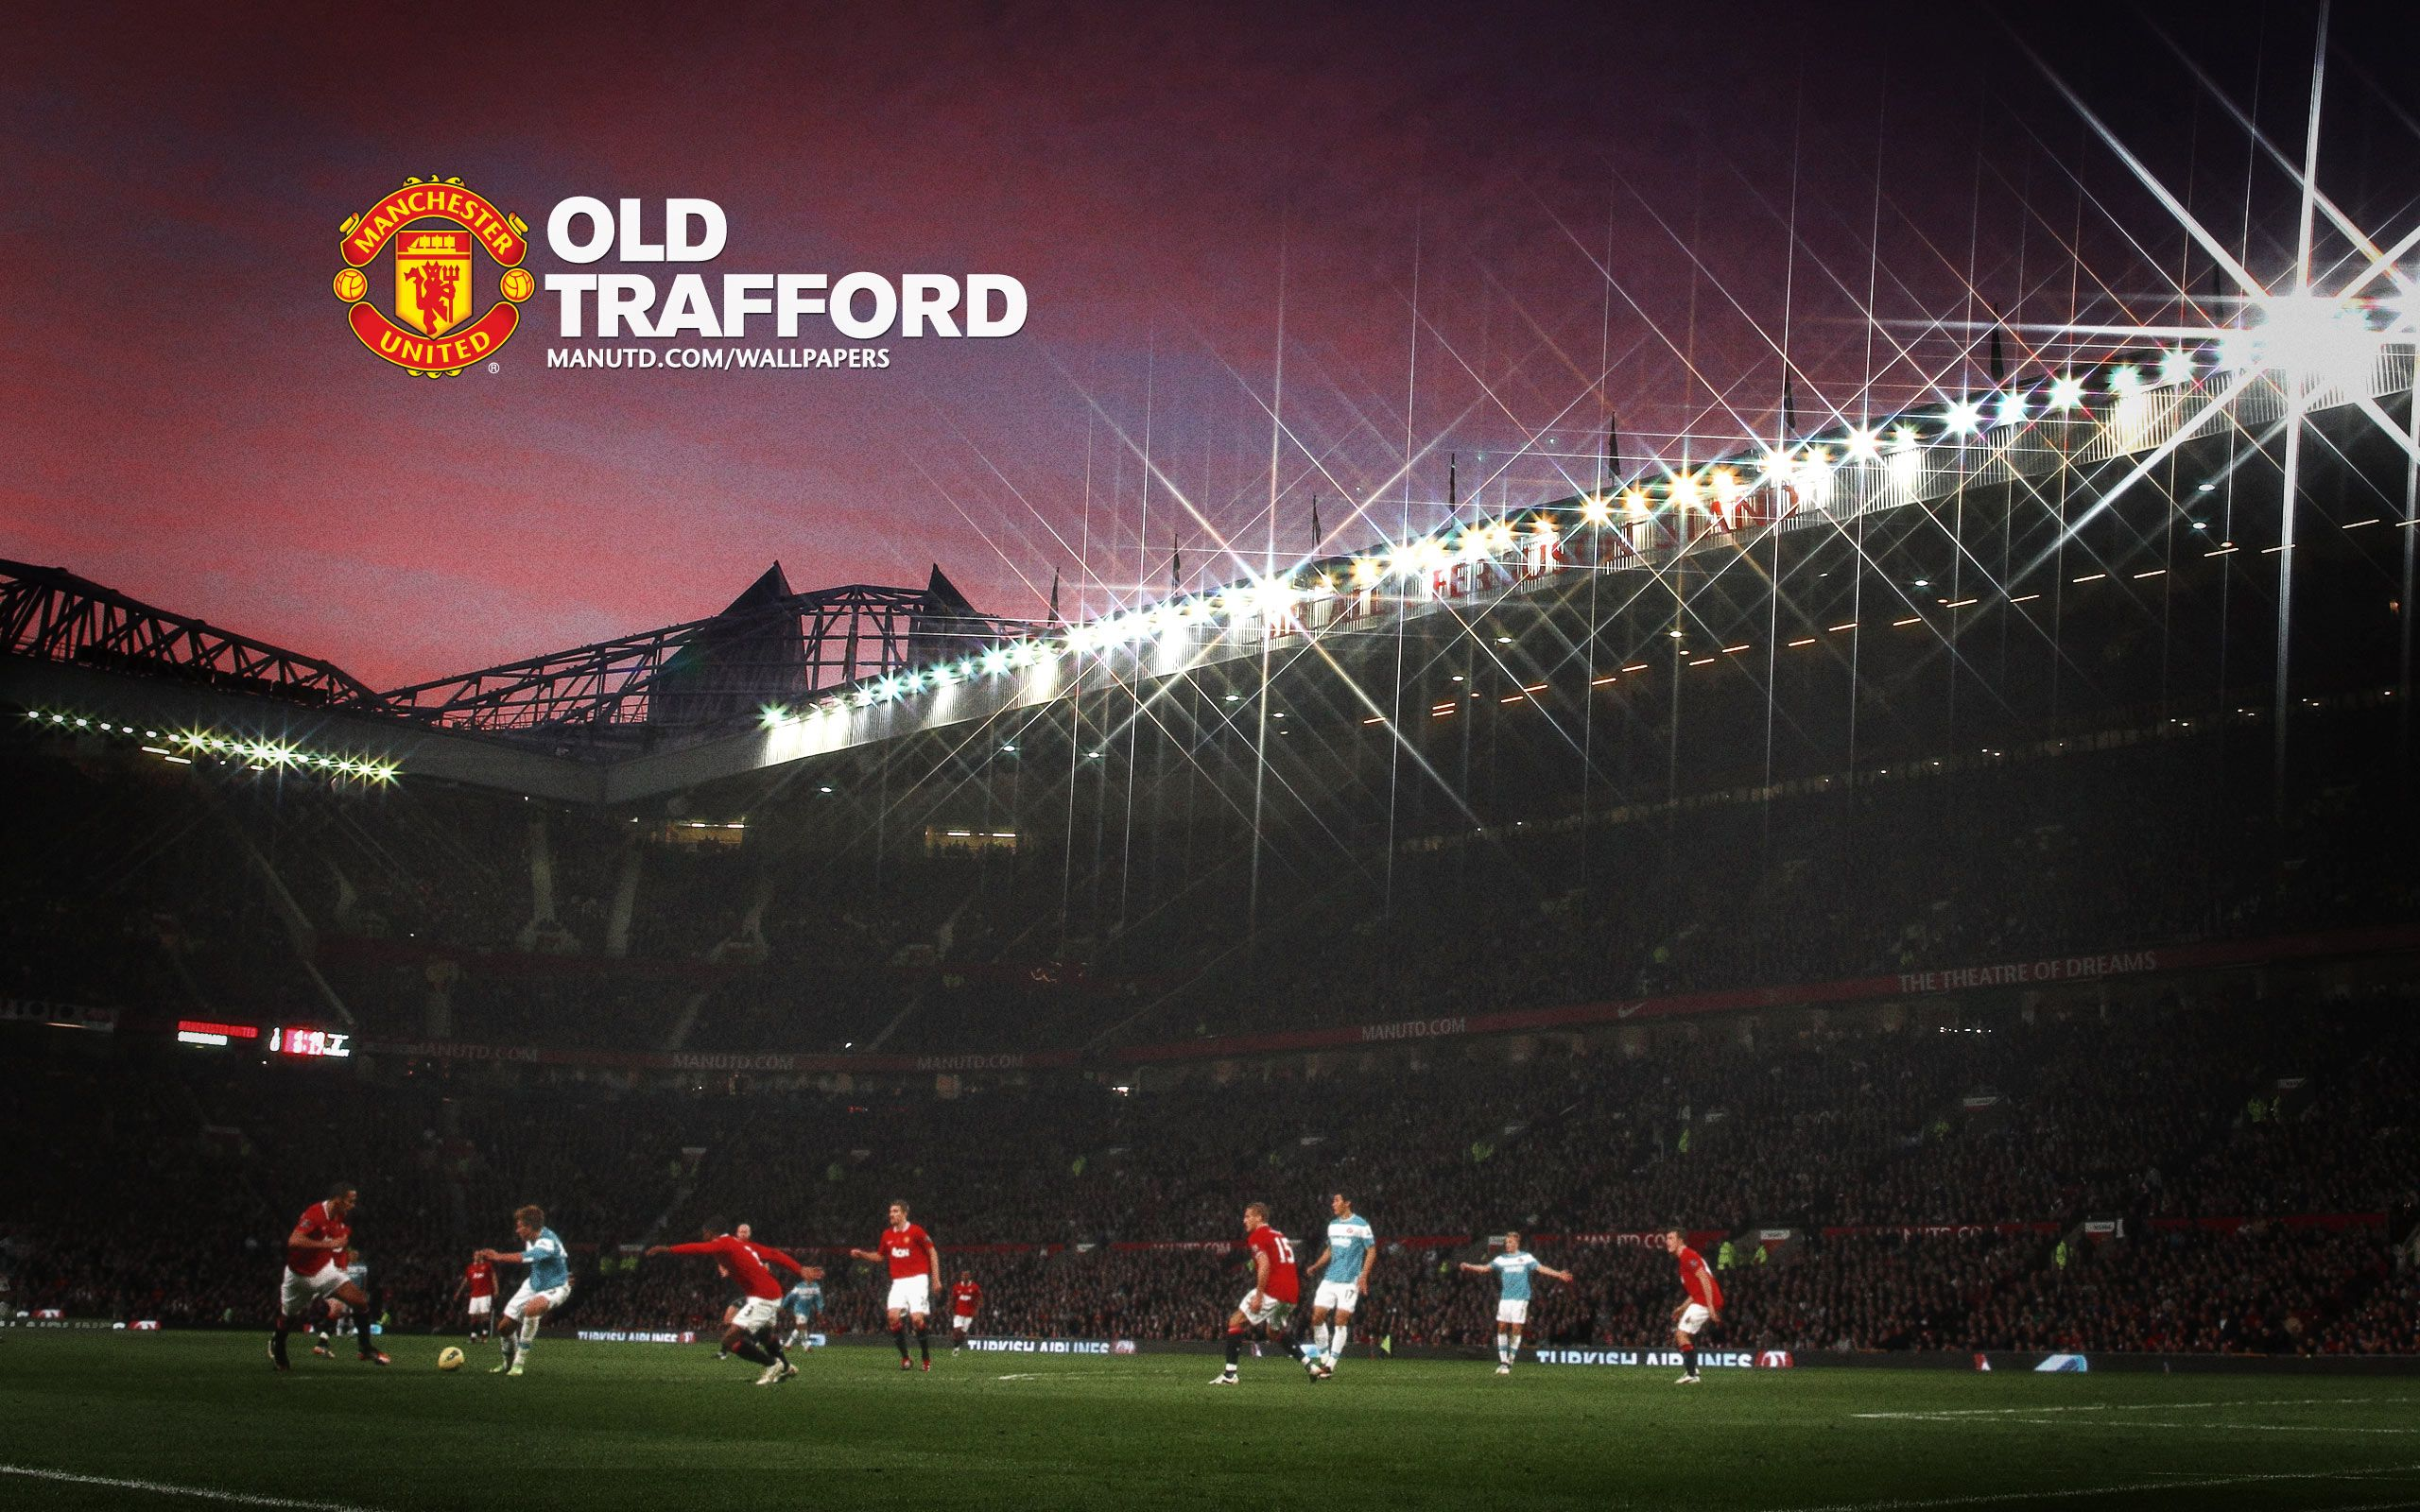 Manchester United 456 Manchester United Wallpaper Manchester United Old Trafford